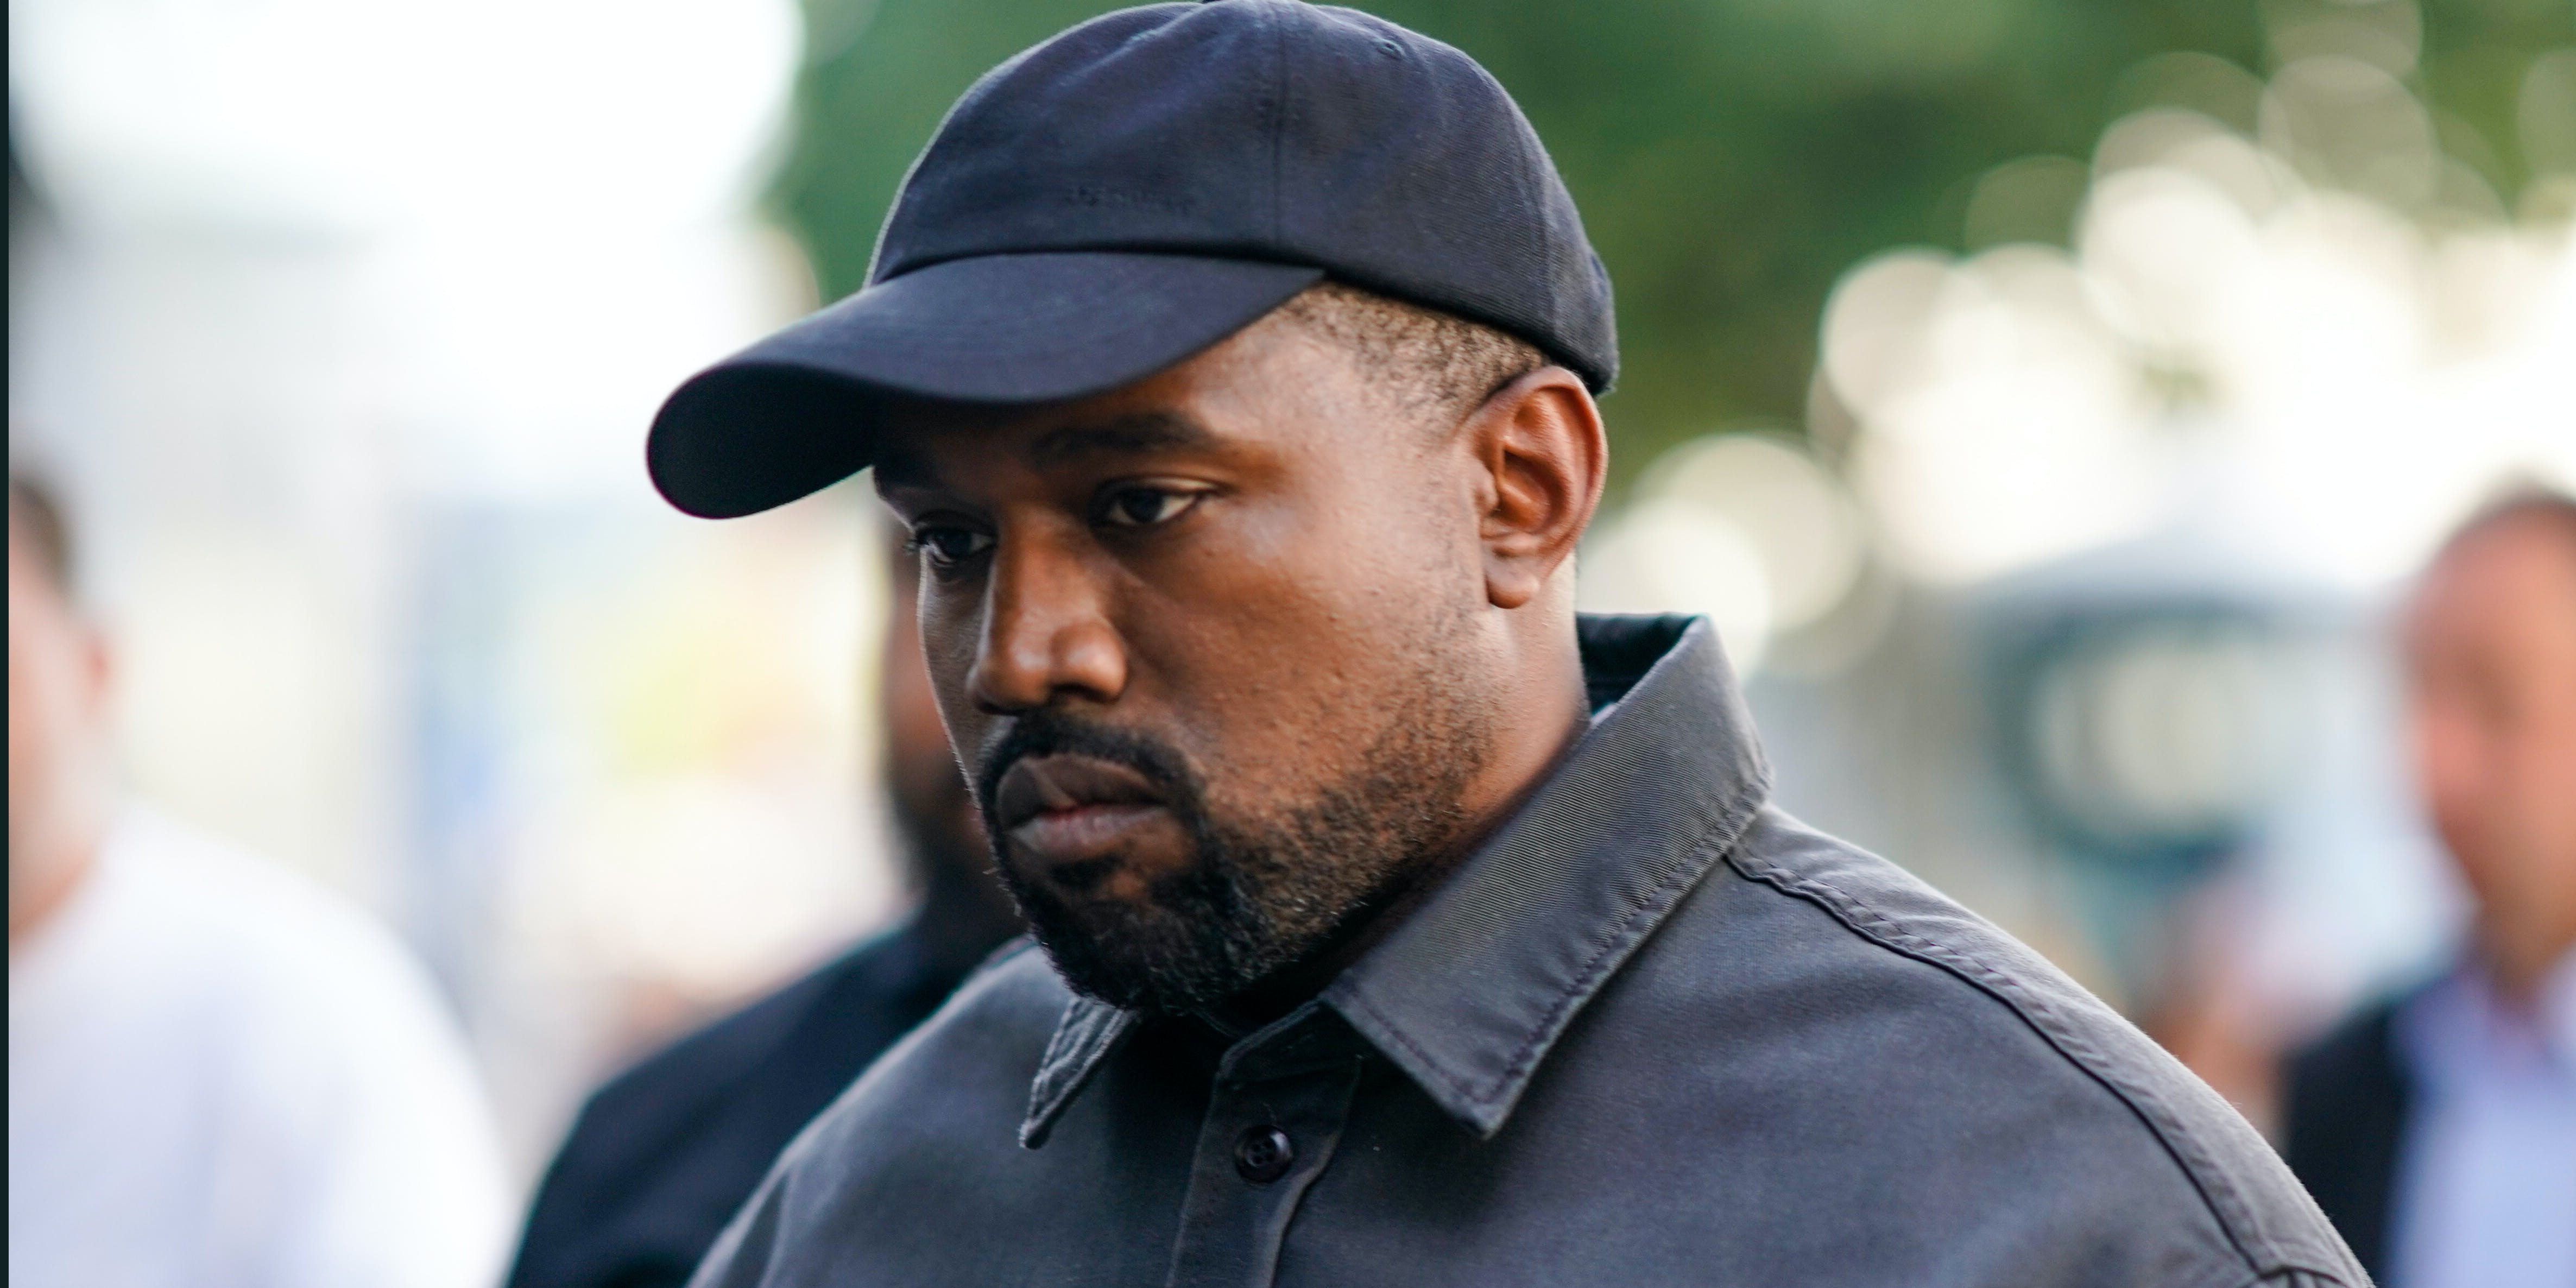 PARIS, FRANCE - JUNE 24: Kanye West is seen, outside 1017 ALYX 9SM show, during Paris Fashion Week Menswear Spring/Summer 2019, on June 24, 2018 in Paris, France. (Photo by Edward Berthelot/GC via Getty Images)